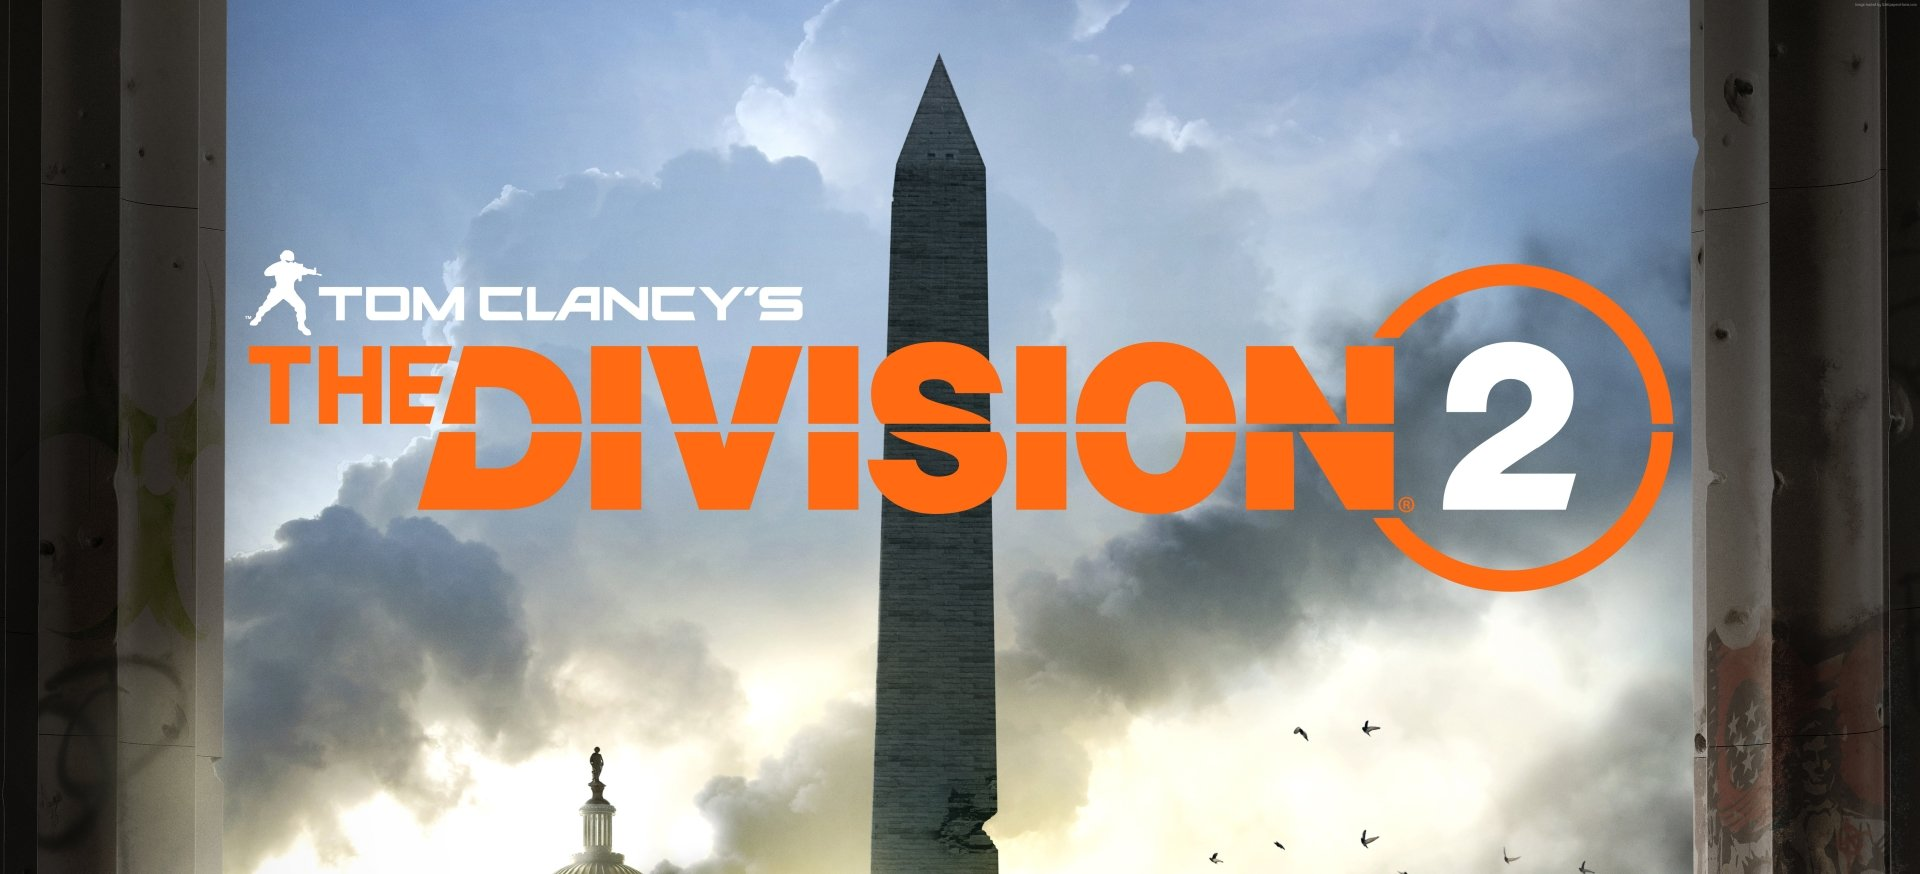 the division 2 wallpaper